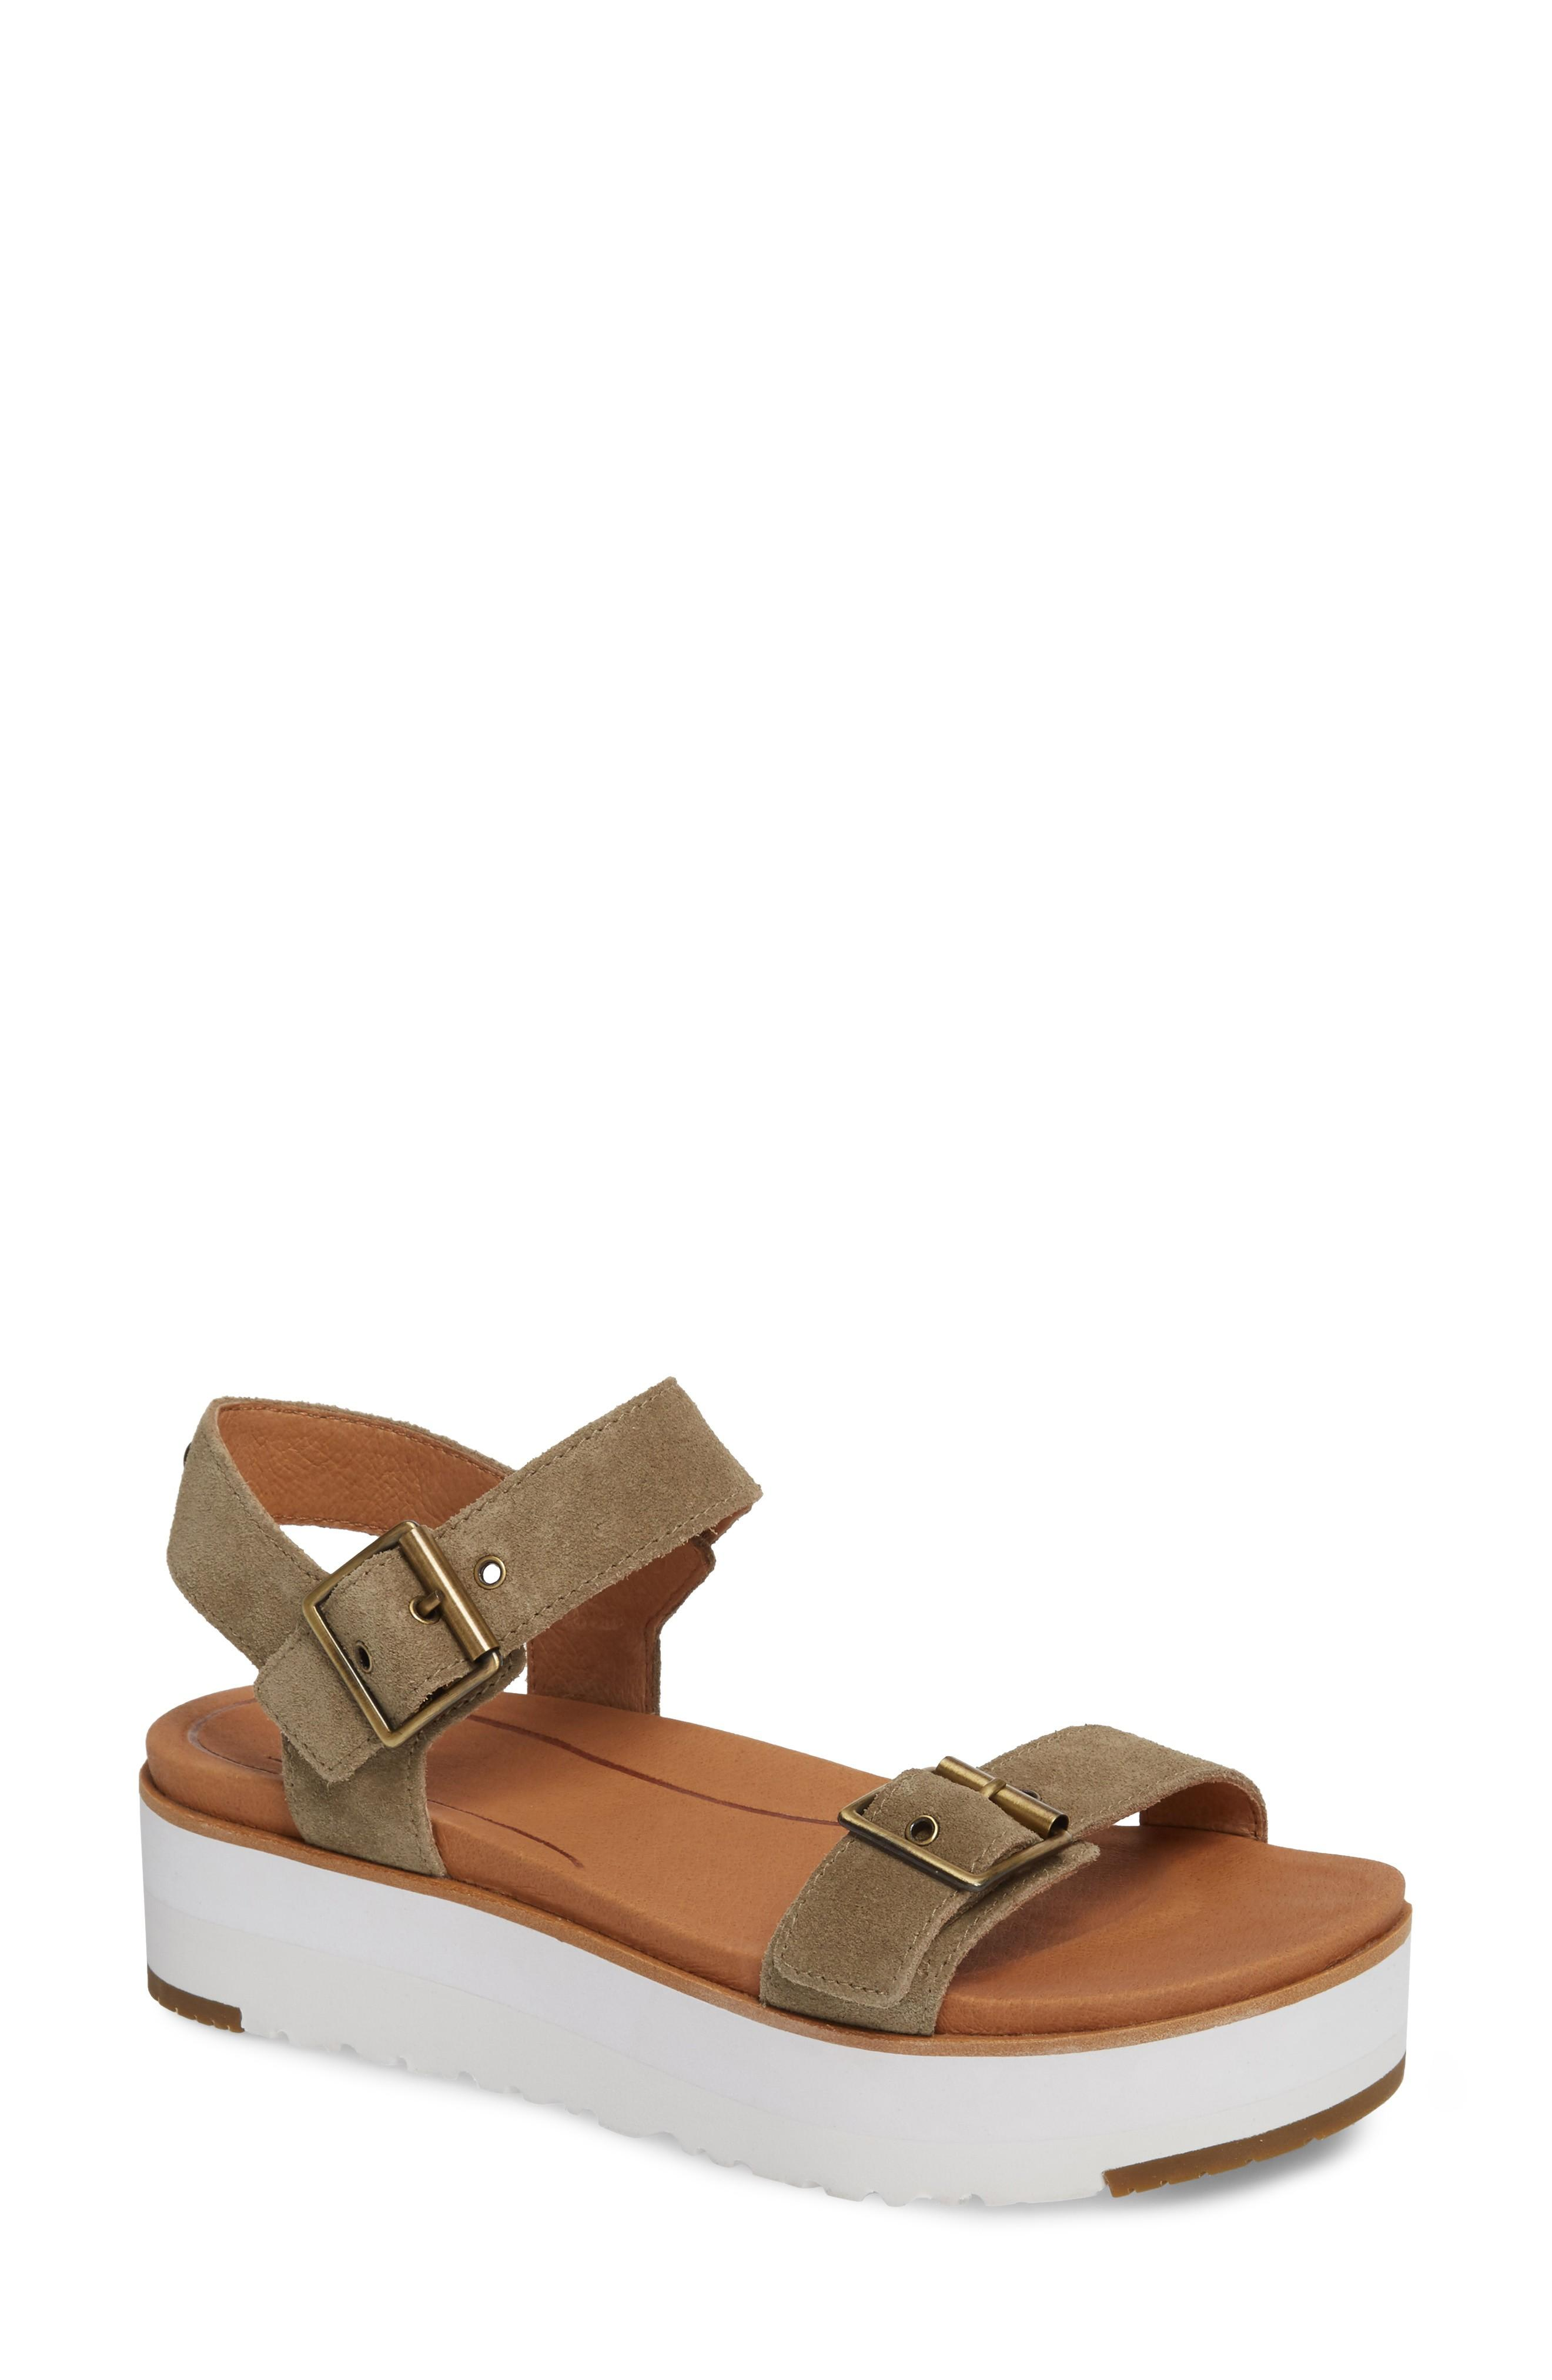 fab232d479d ... of a classic quarter-strap sandal outfitted with an Imprint by UGG  foam-cushioned footbed for comfort. Style Name  Ugg Angie Platform Sandal  (Women).